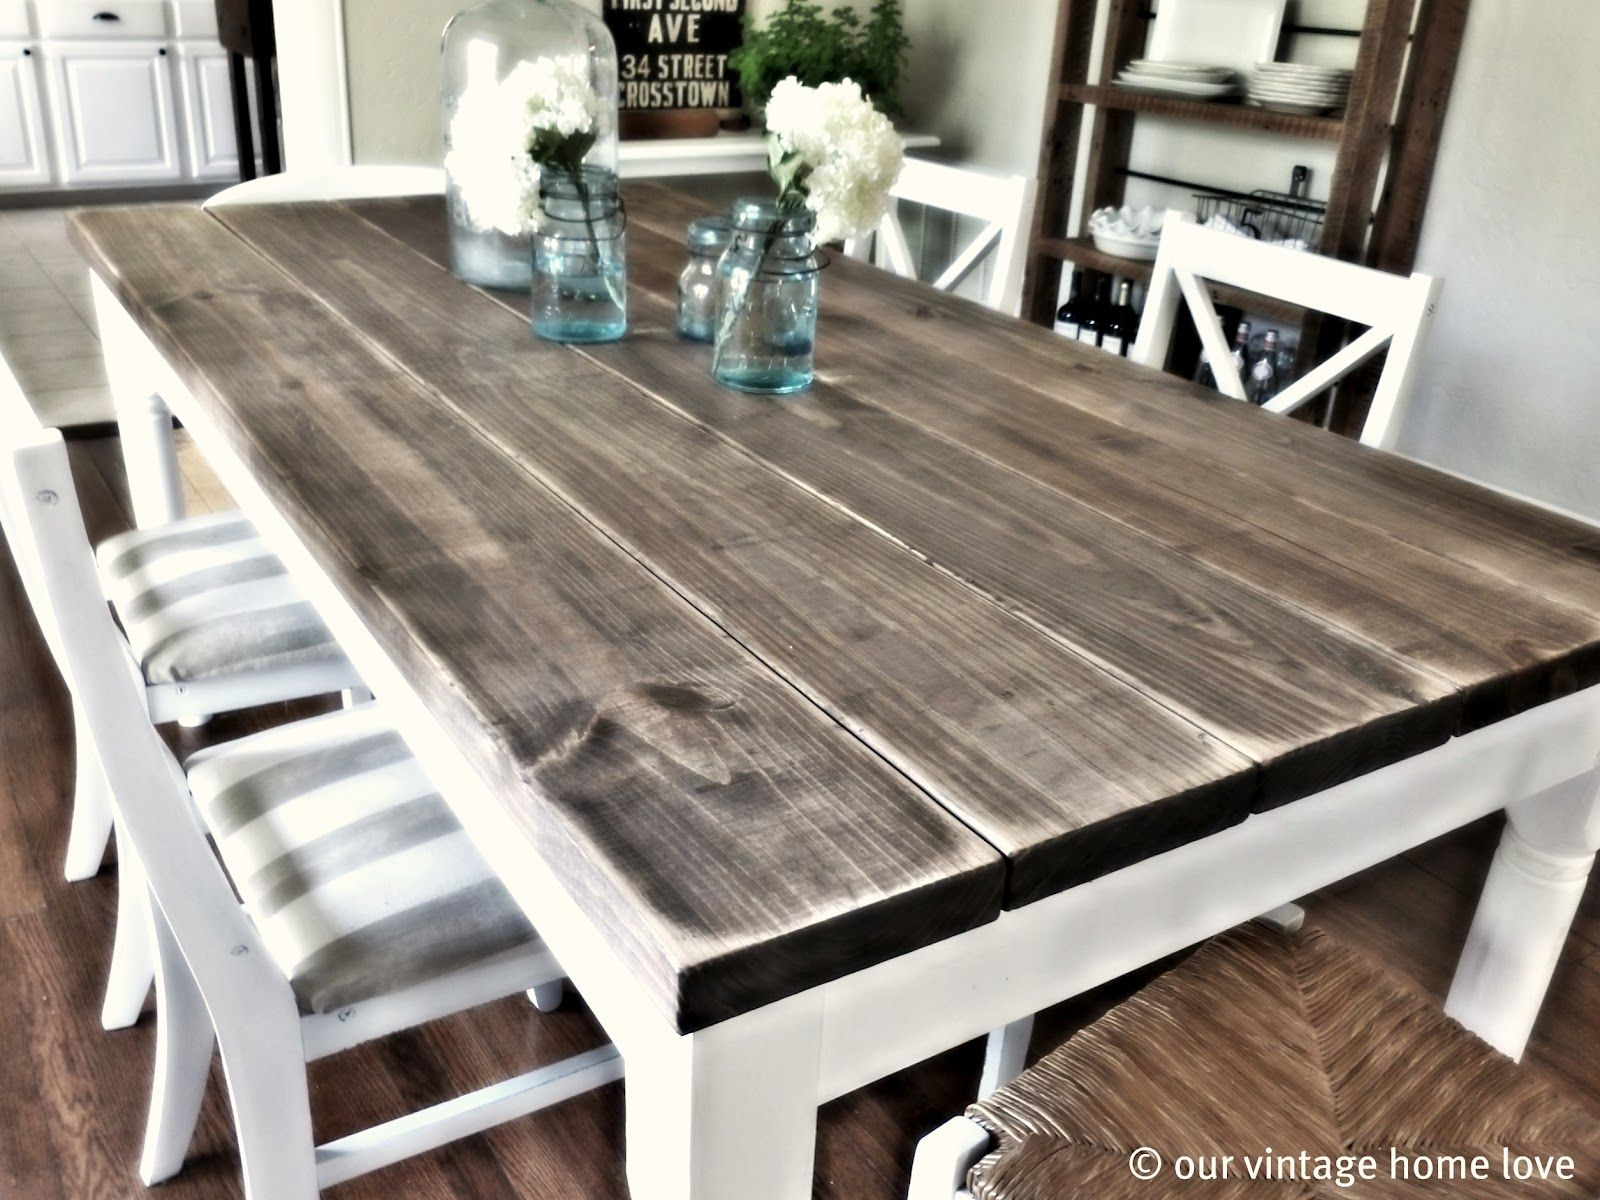 183 Reference Of Diy Dining Room Corner Bench In 2020 Farmhouse Dining Table Wood Dining Room Diy Kitchen Table